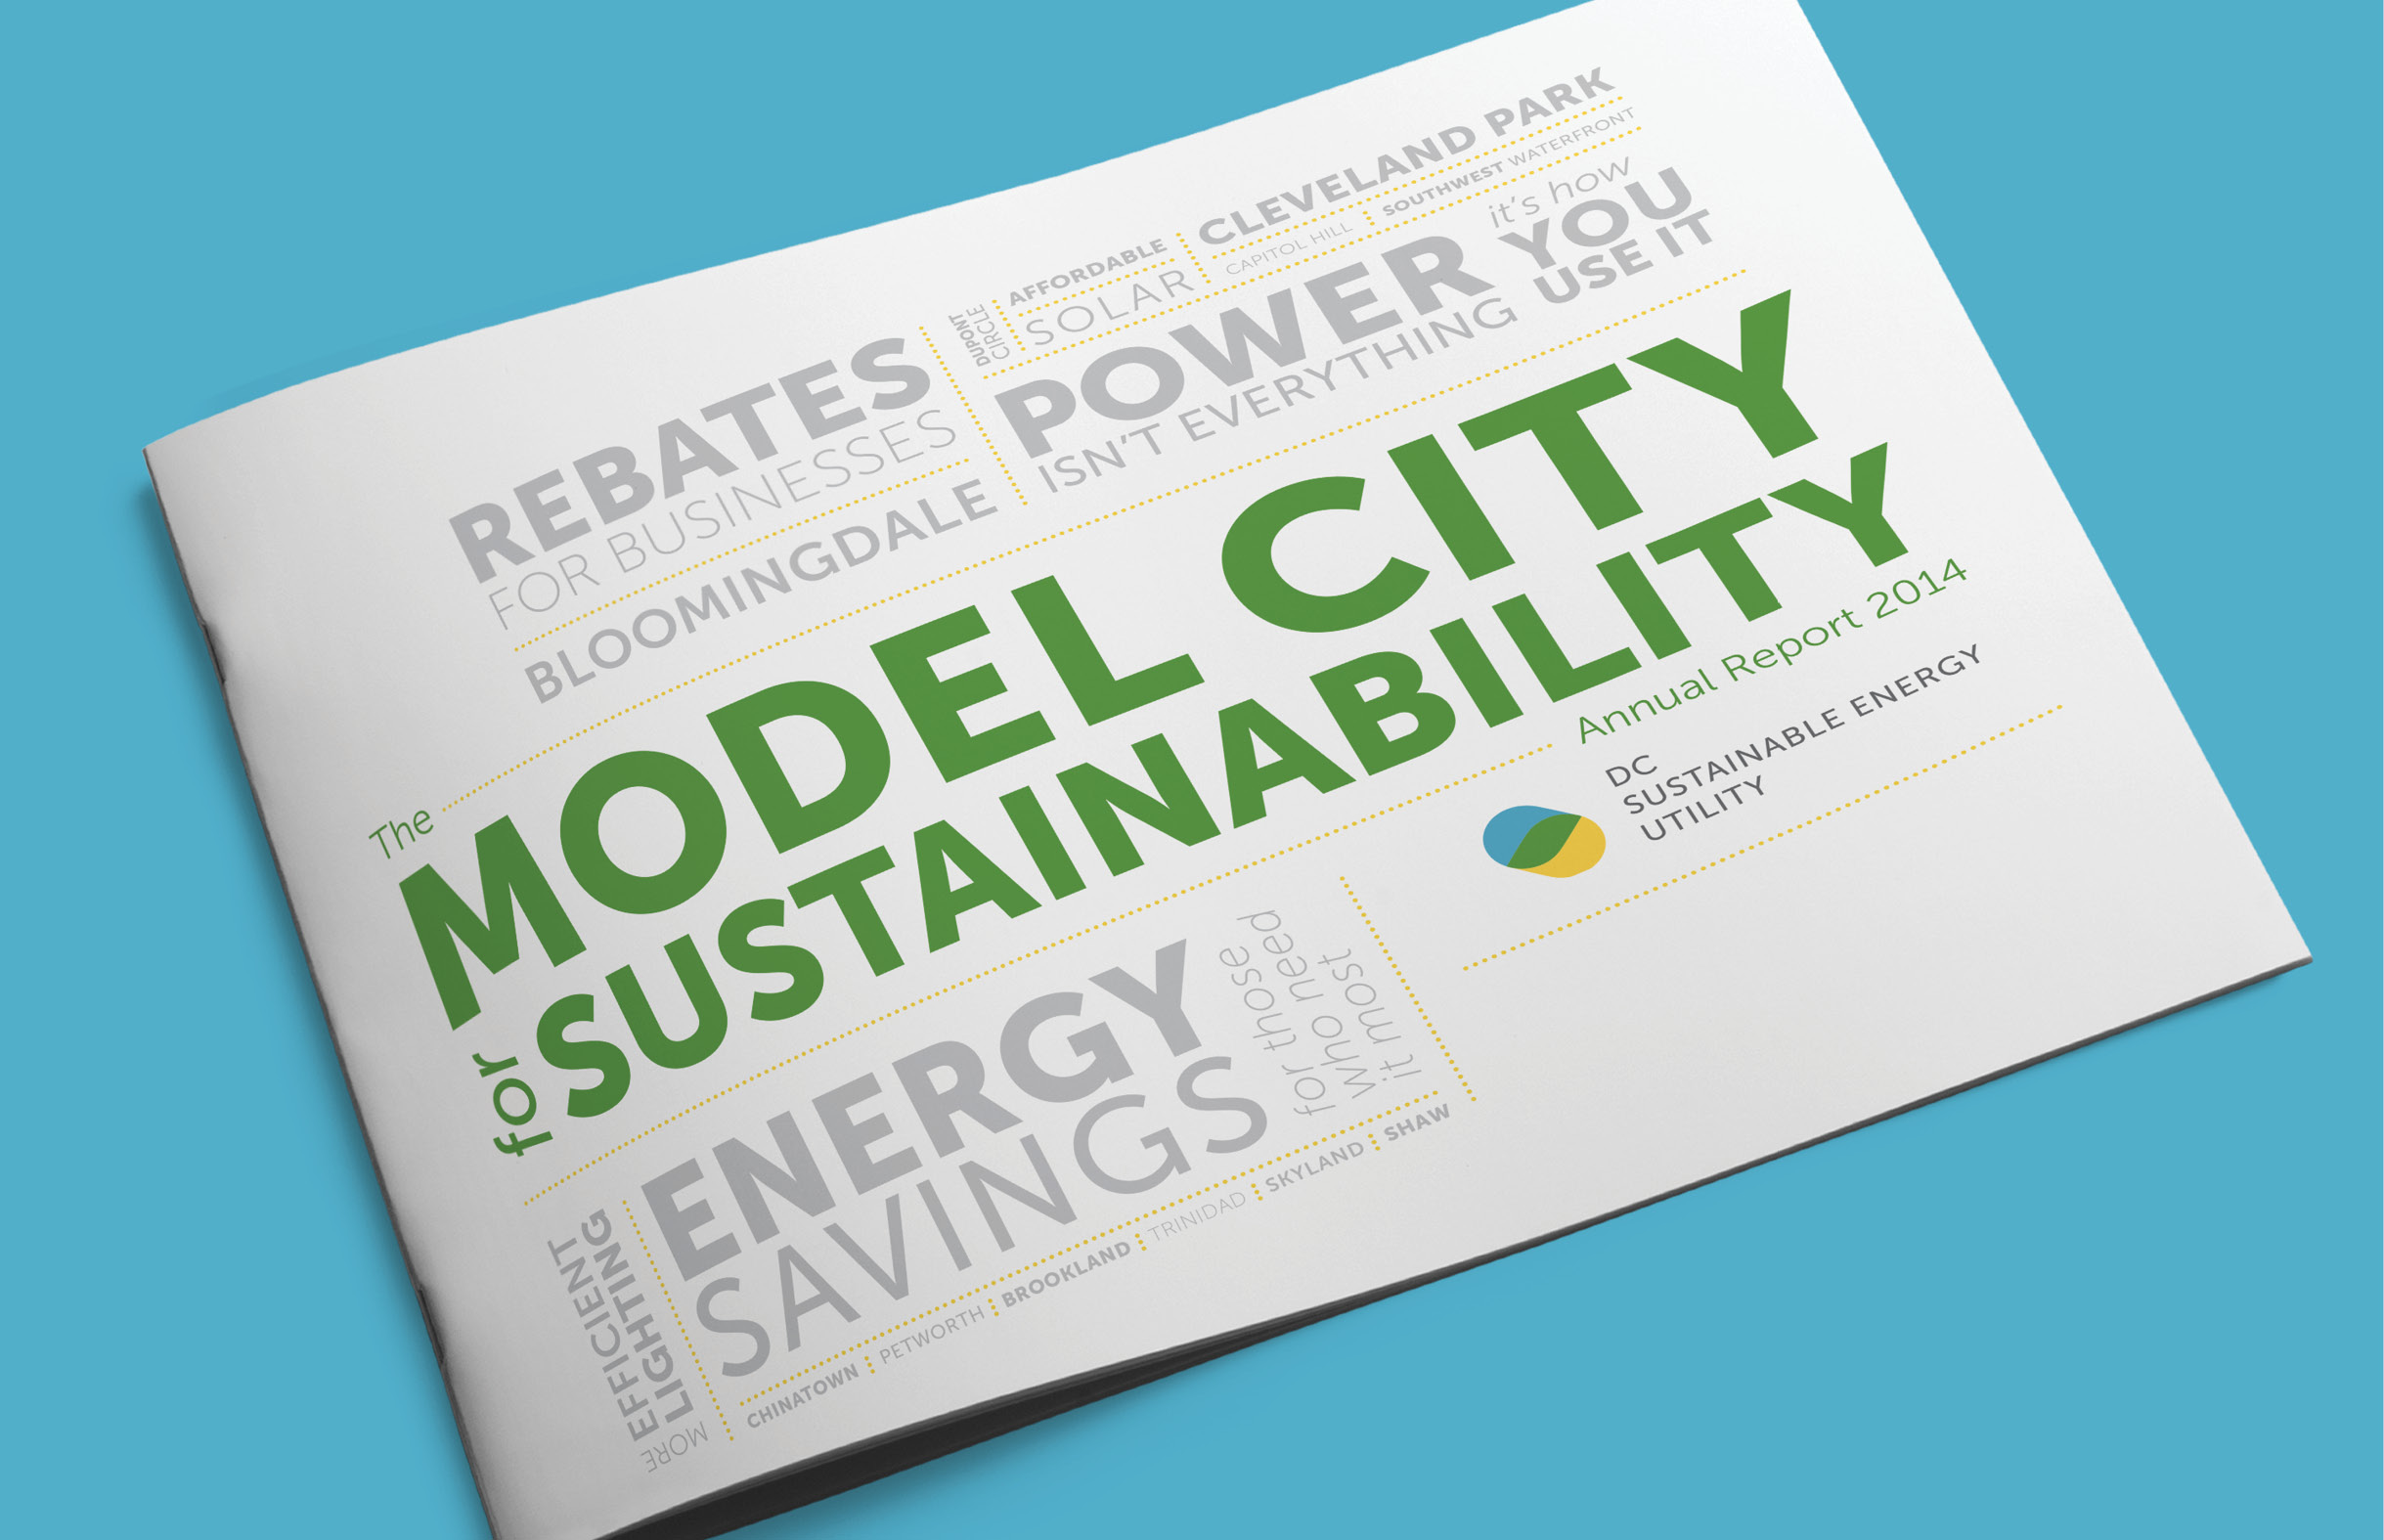 The mostly white cover of the DCSEU annual report has a word cloud of DC neighborhoods in grey and the title 'Model City for Sustainability' in Green. The report is landscaped letter sized, saddle stitched on a blue background.